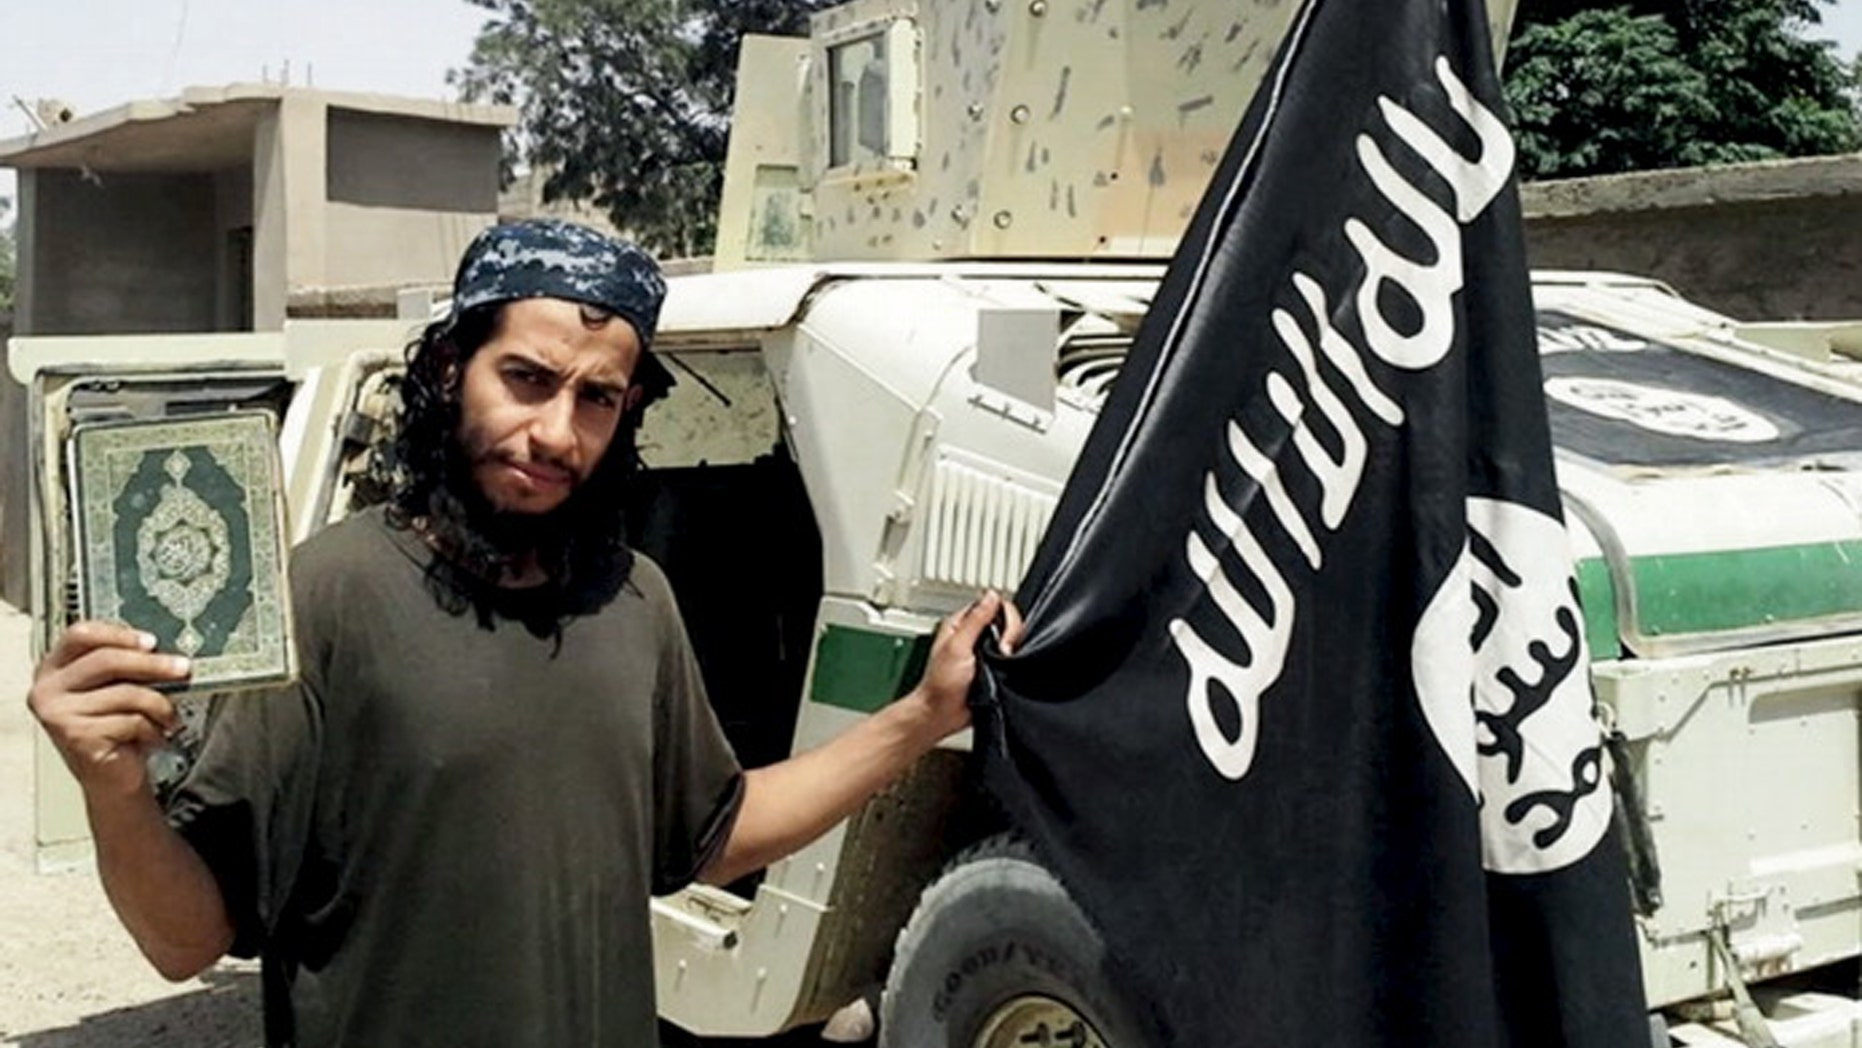 An undated photograph of a man described as Abdelhamid Abaaoud that was published in the Islamic State's online magazine Dabiq and posted on a social media website. A Belgian national in Syria and was believed to be one of Islamic State's most active operators is suspected of being behind attacks in Paris